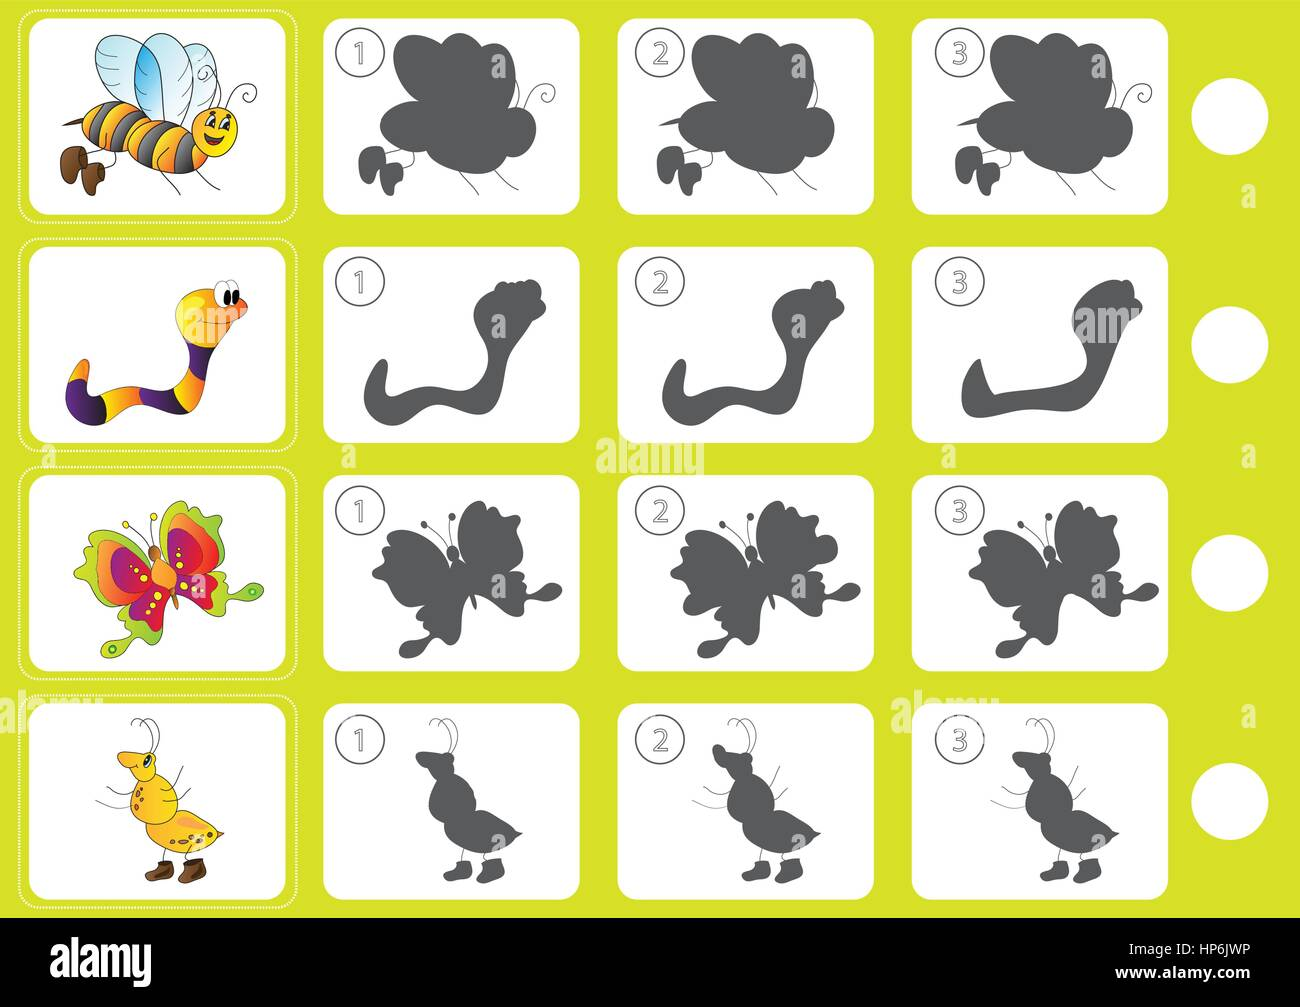 Match Shadow Puzzle Worksheet Kids Stock Vector Images